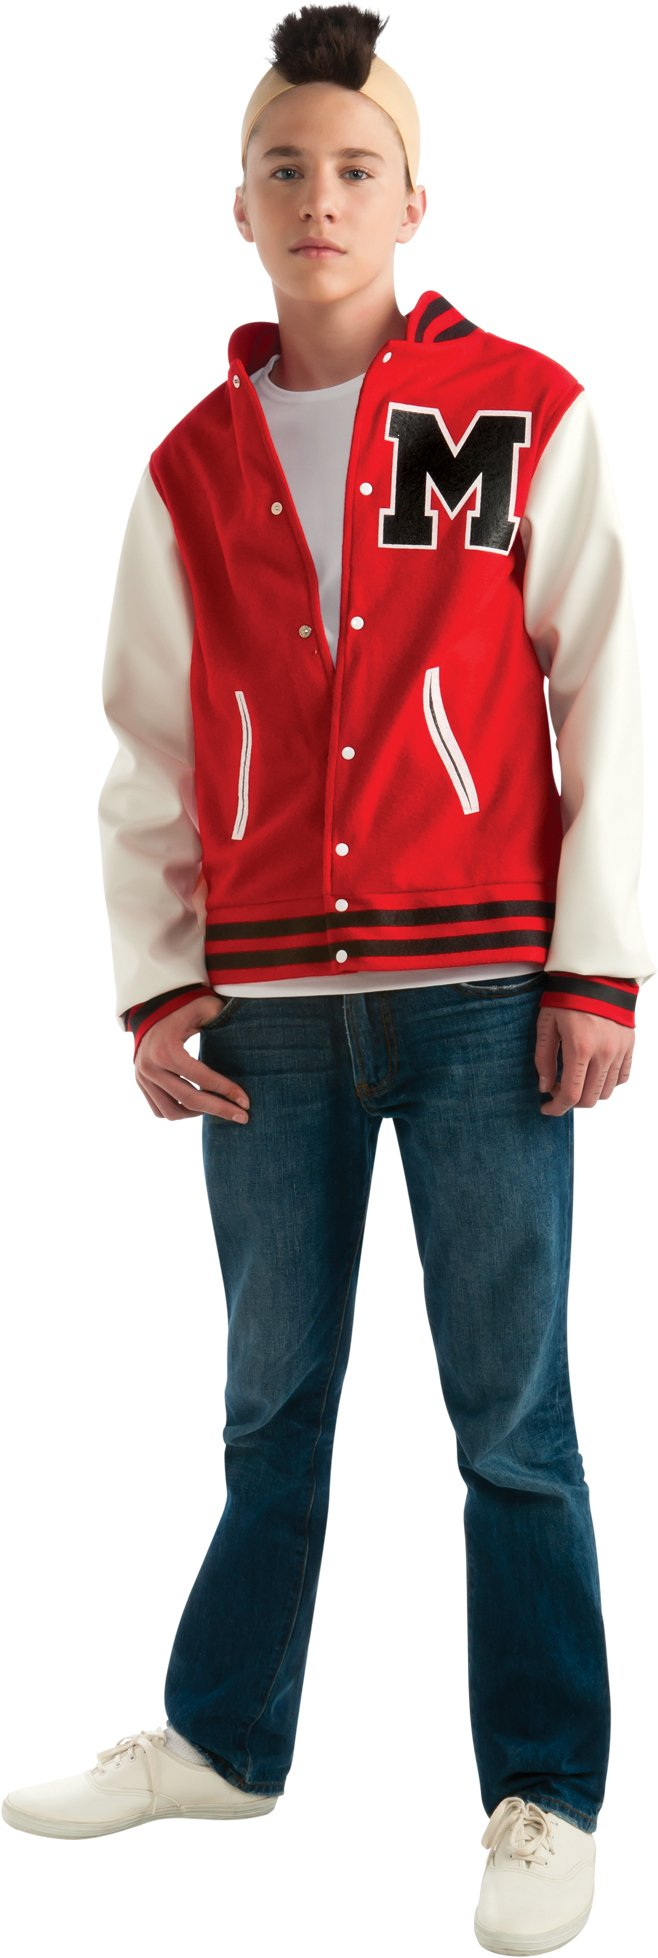 Glee - Puck Teen Costume